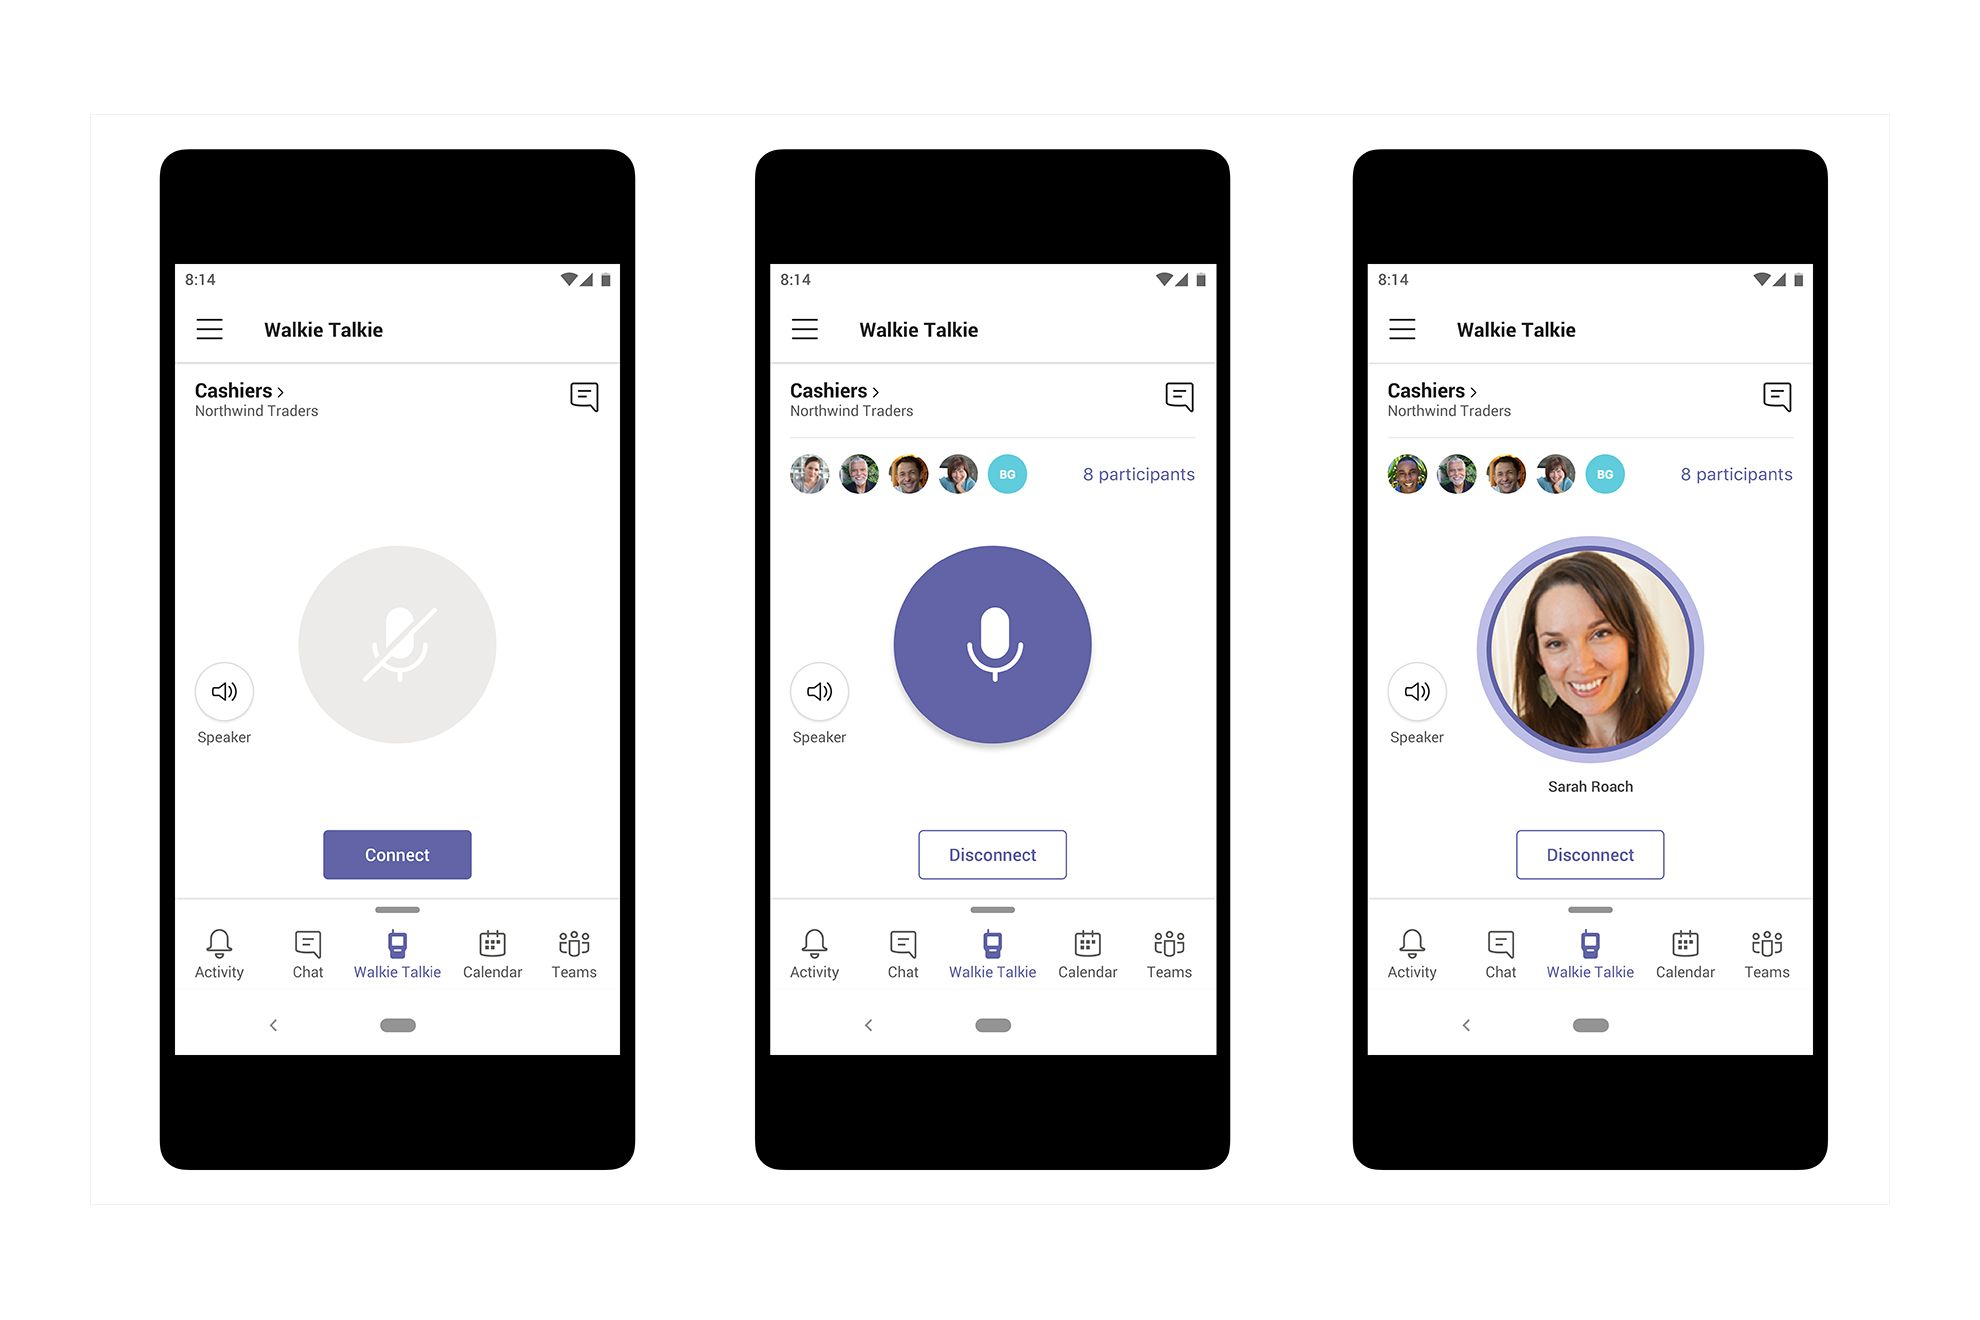 Microsoft Teams is getting a Walkie Talkie feature so you